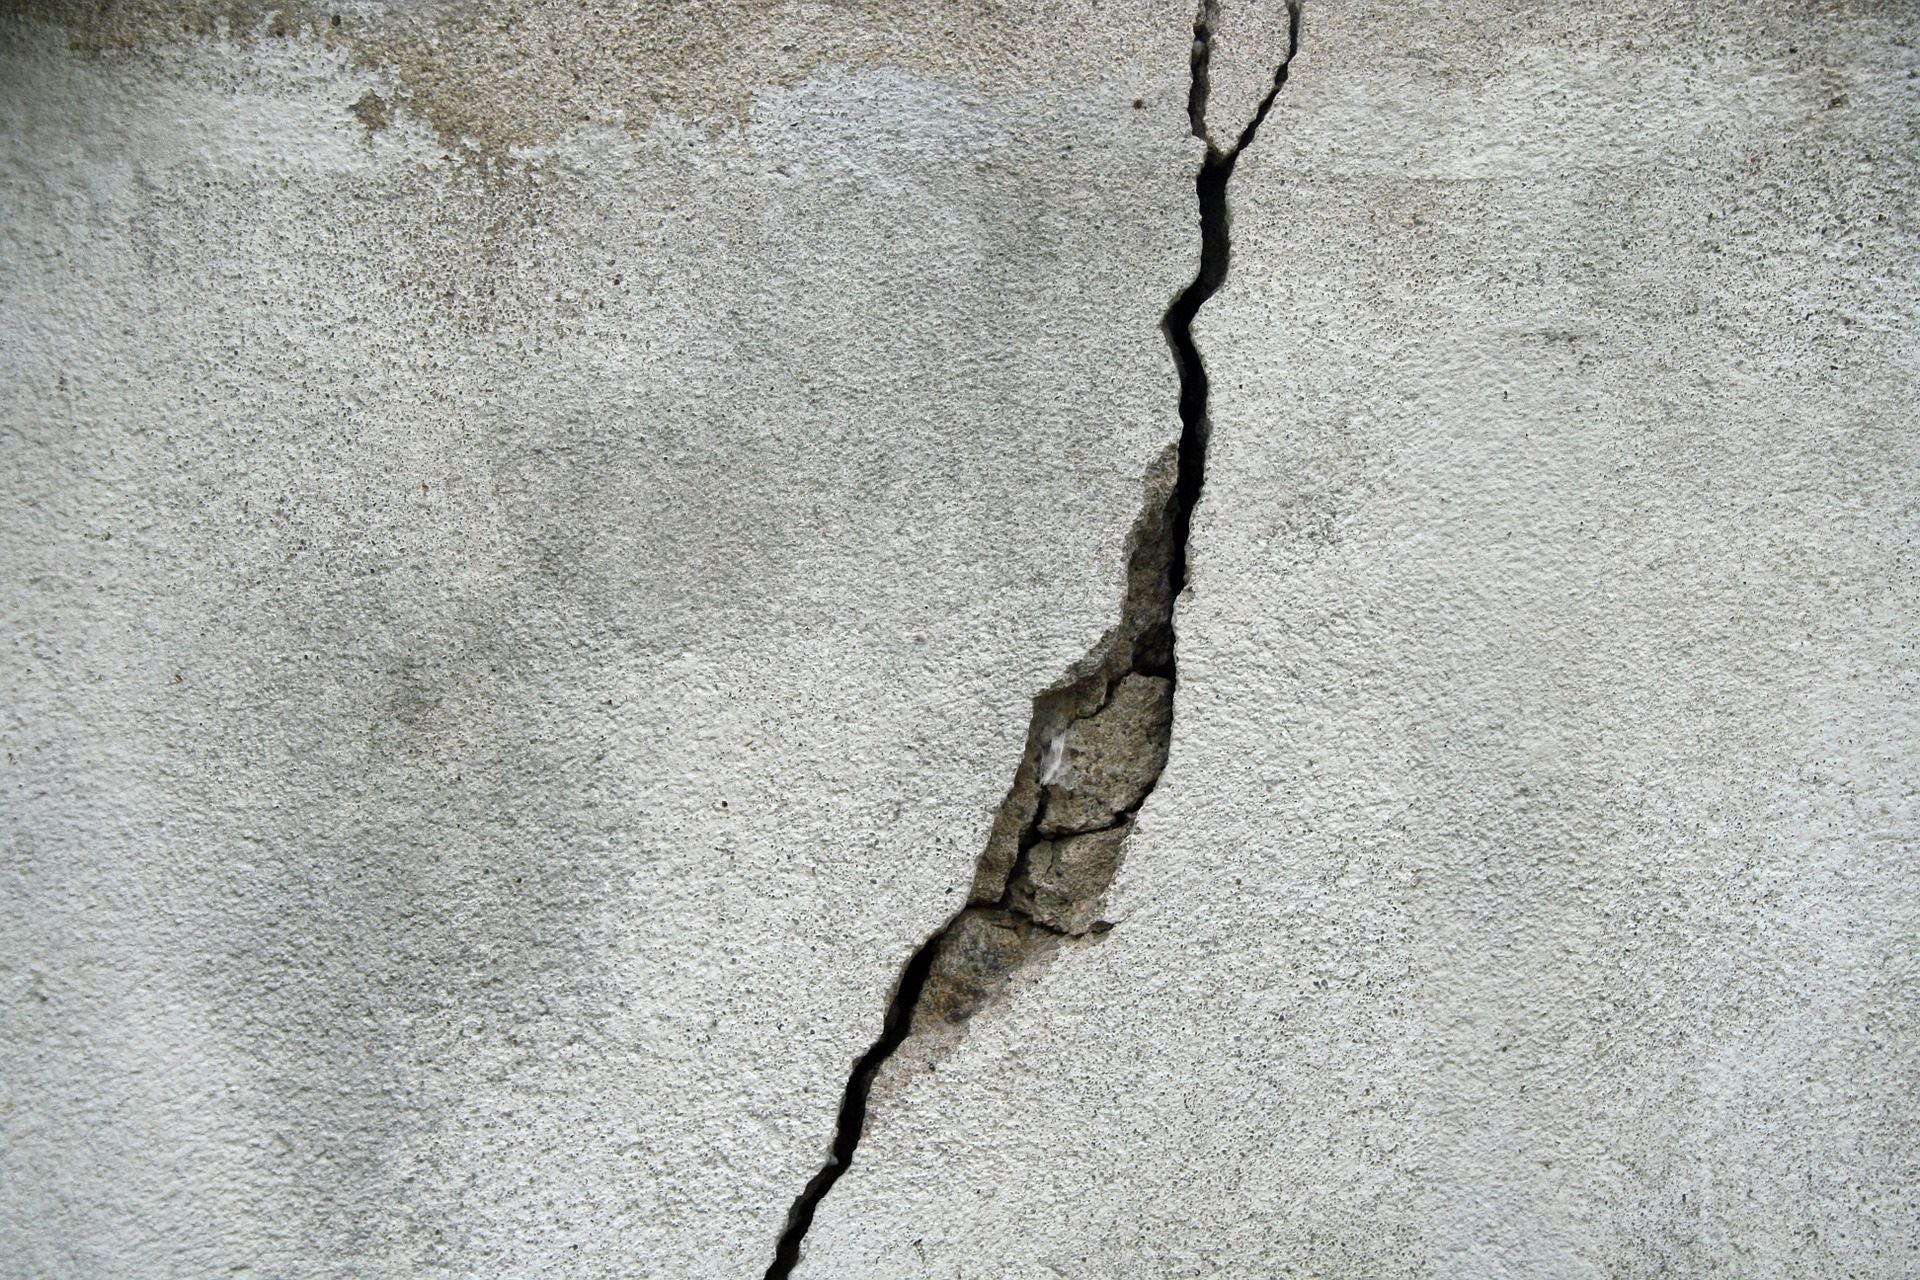 Large crack in a cement wall